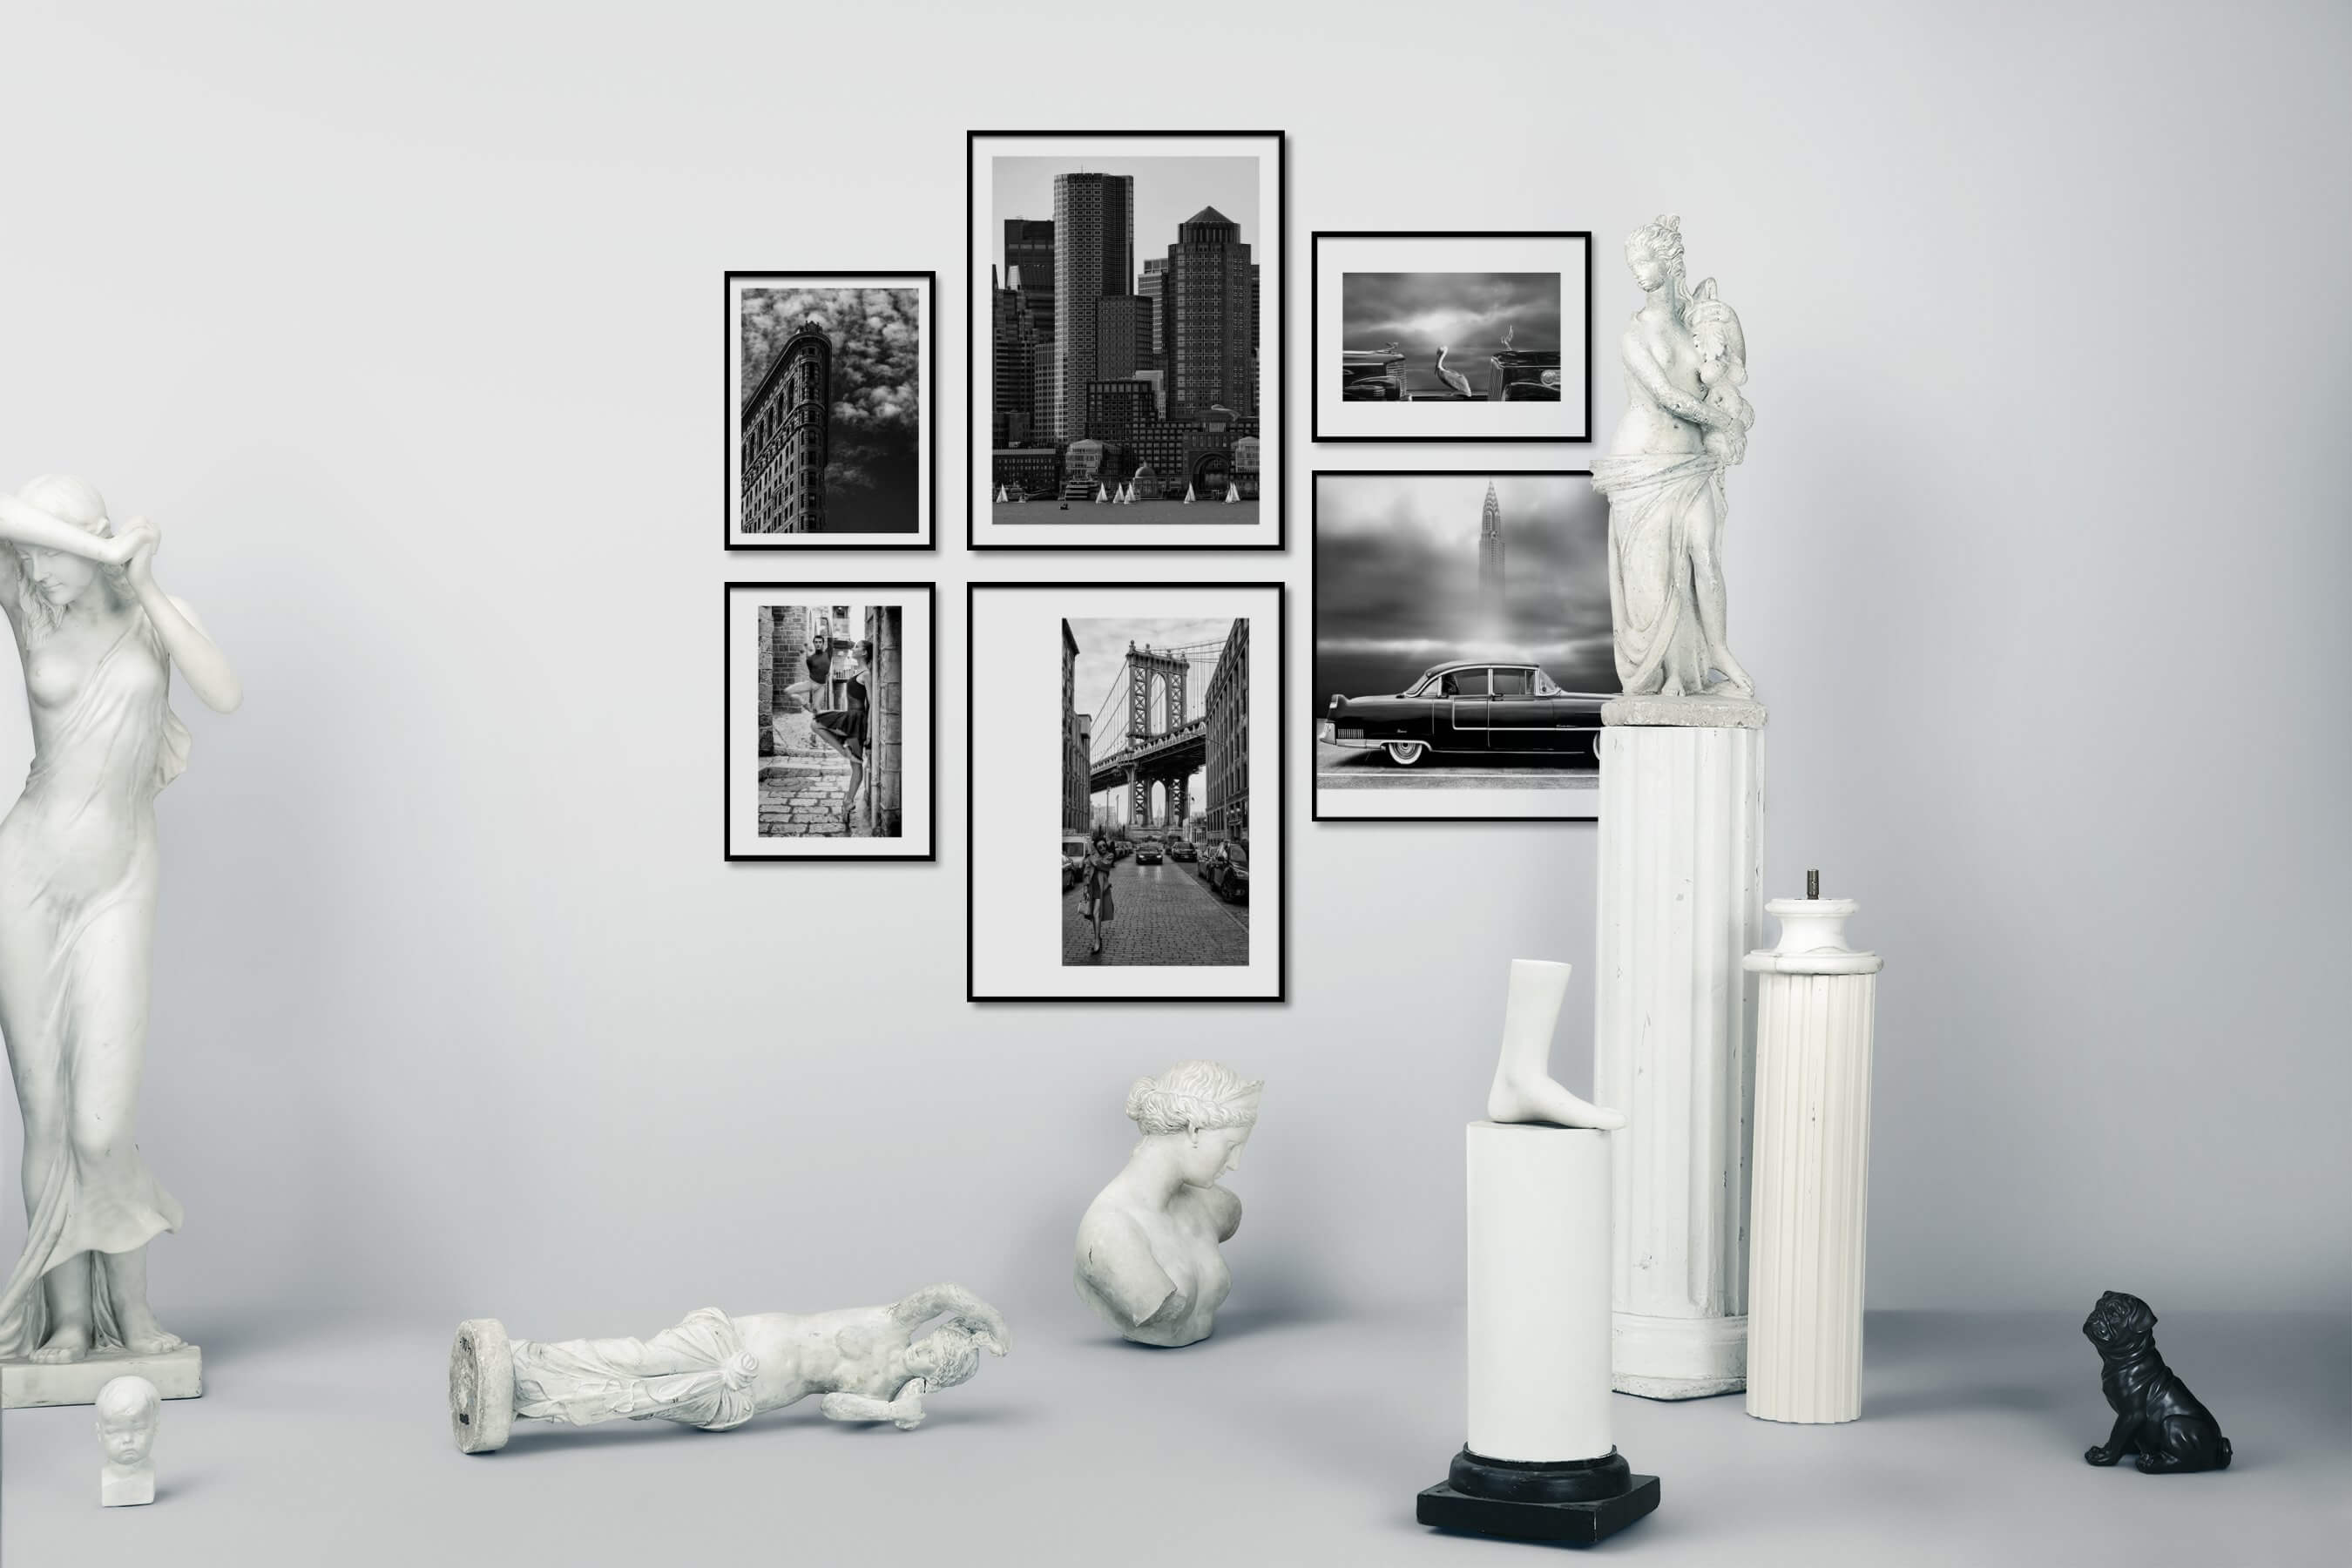 Gallery wall idea with six framed pictures arranged on a wall depicting Black & White, For the Moderate, City Life, Americana, Fashion & Beauty, Animals, and Vintage